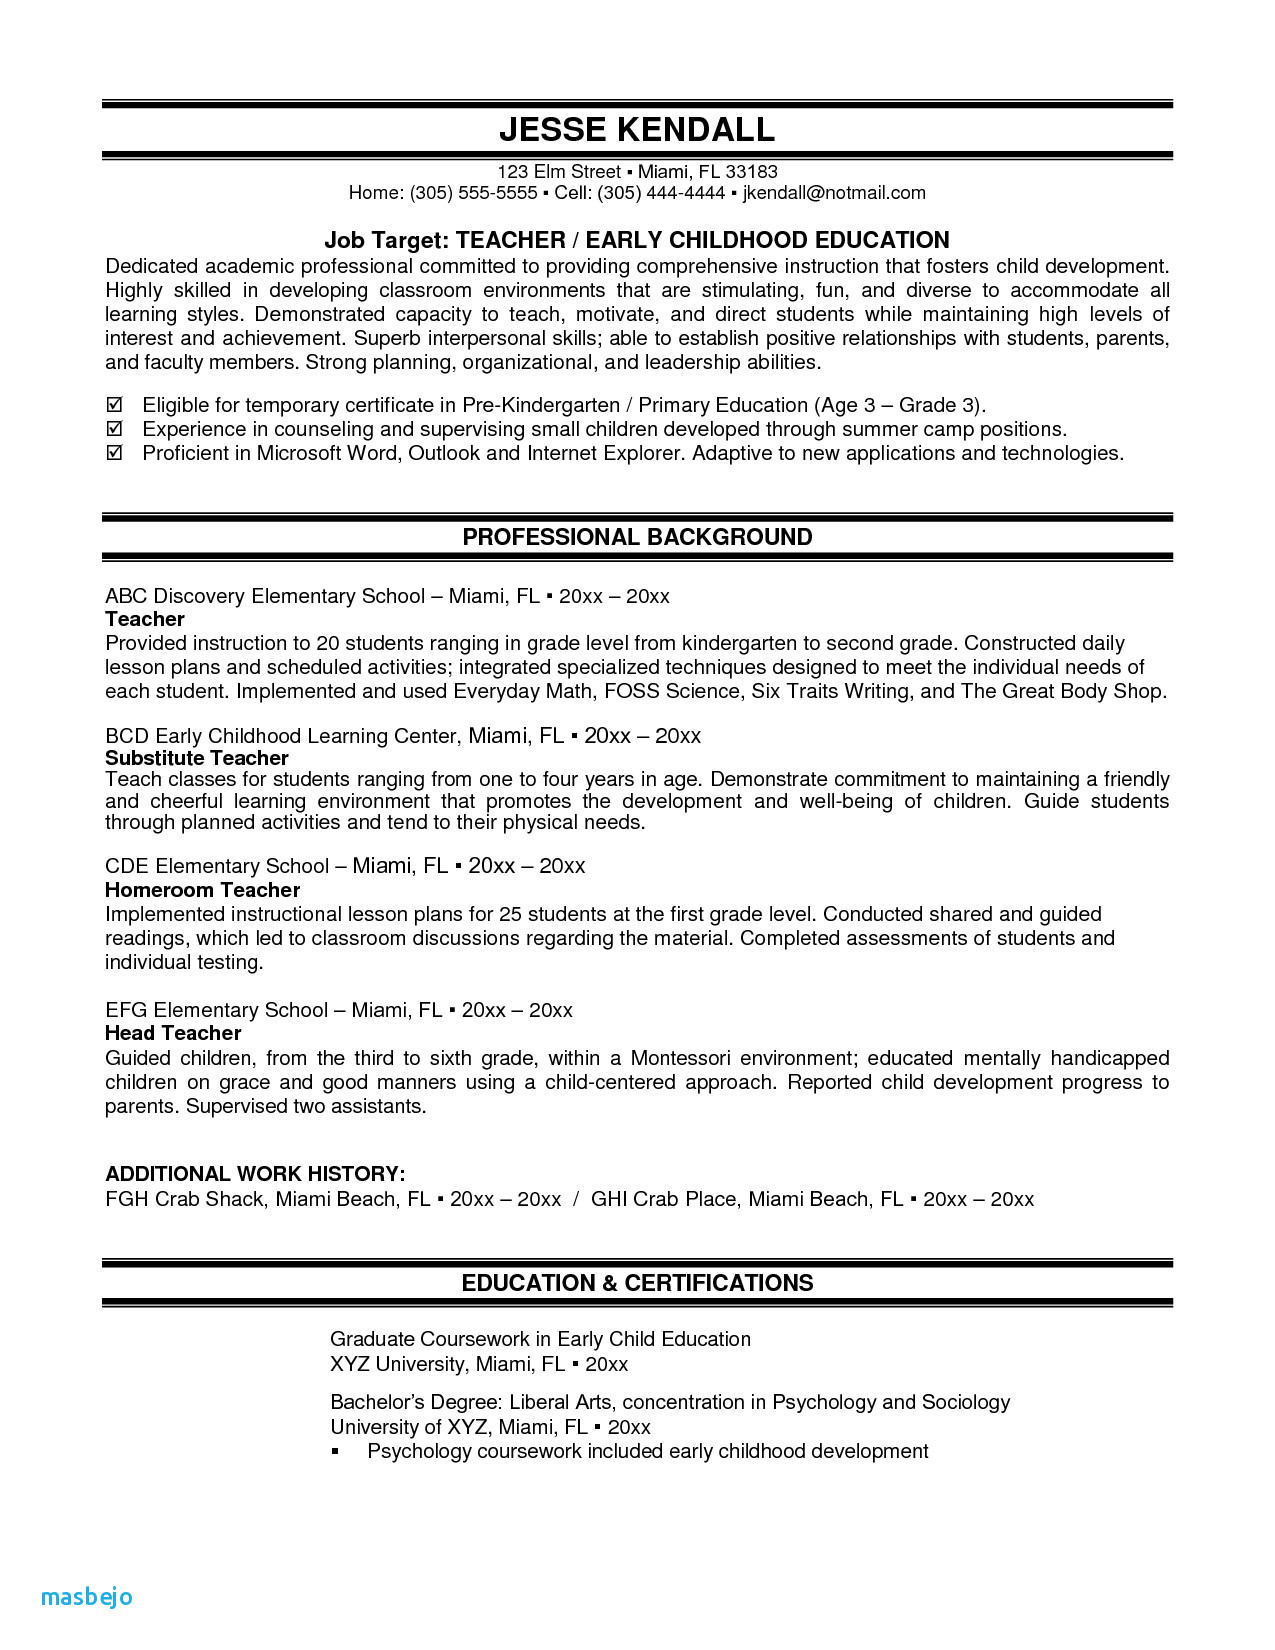 Resume Template for Teacher assistant - Resume Examples for Teacher assistant Elegant Resume for Highschool